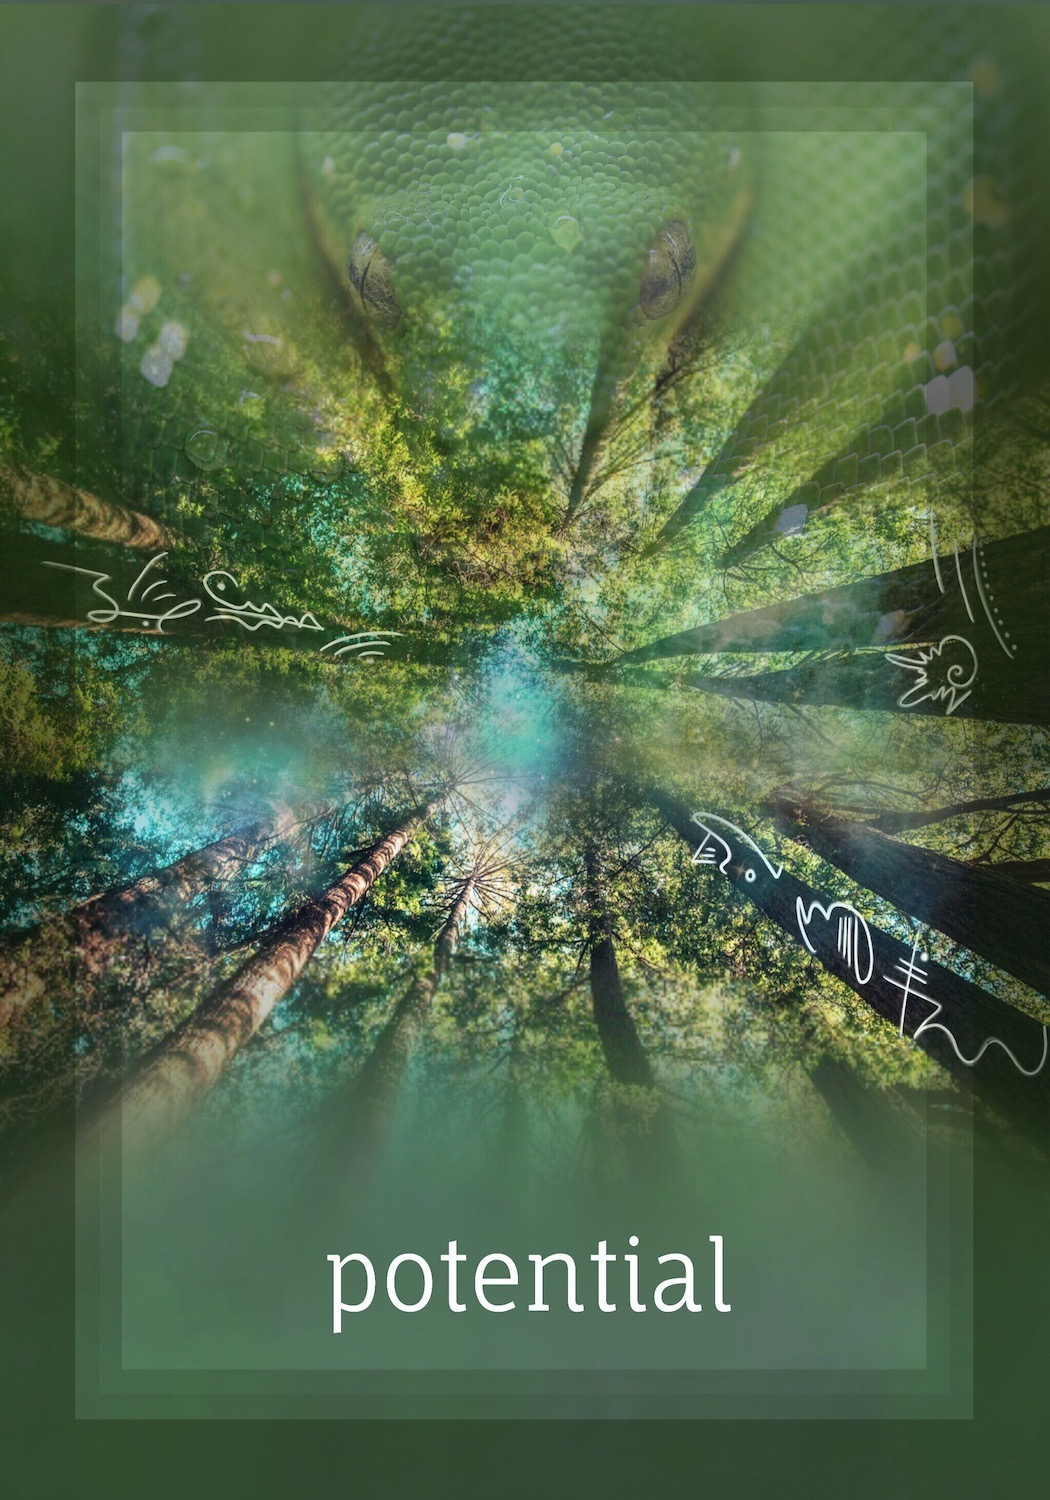 """""""With potential comes the choice to act, or to transmute."""" -"""